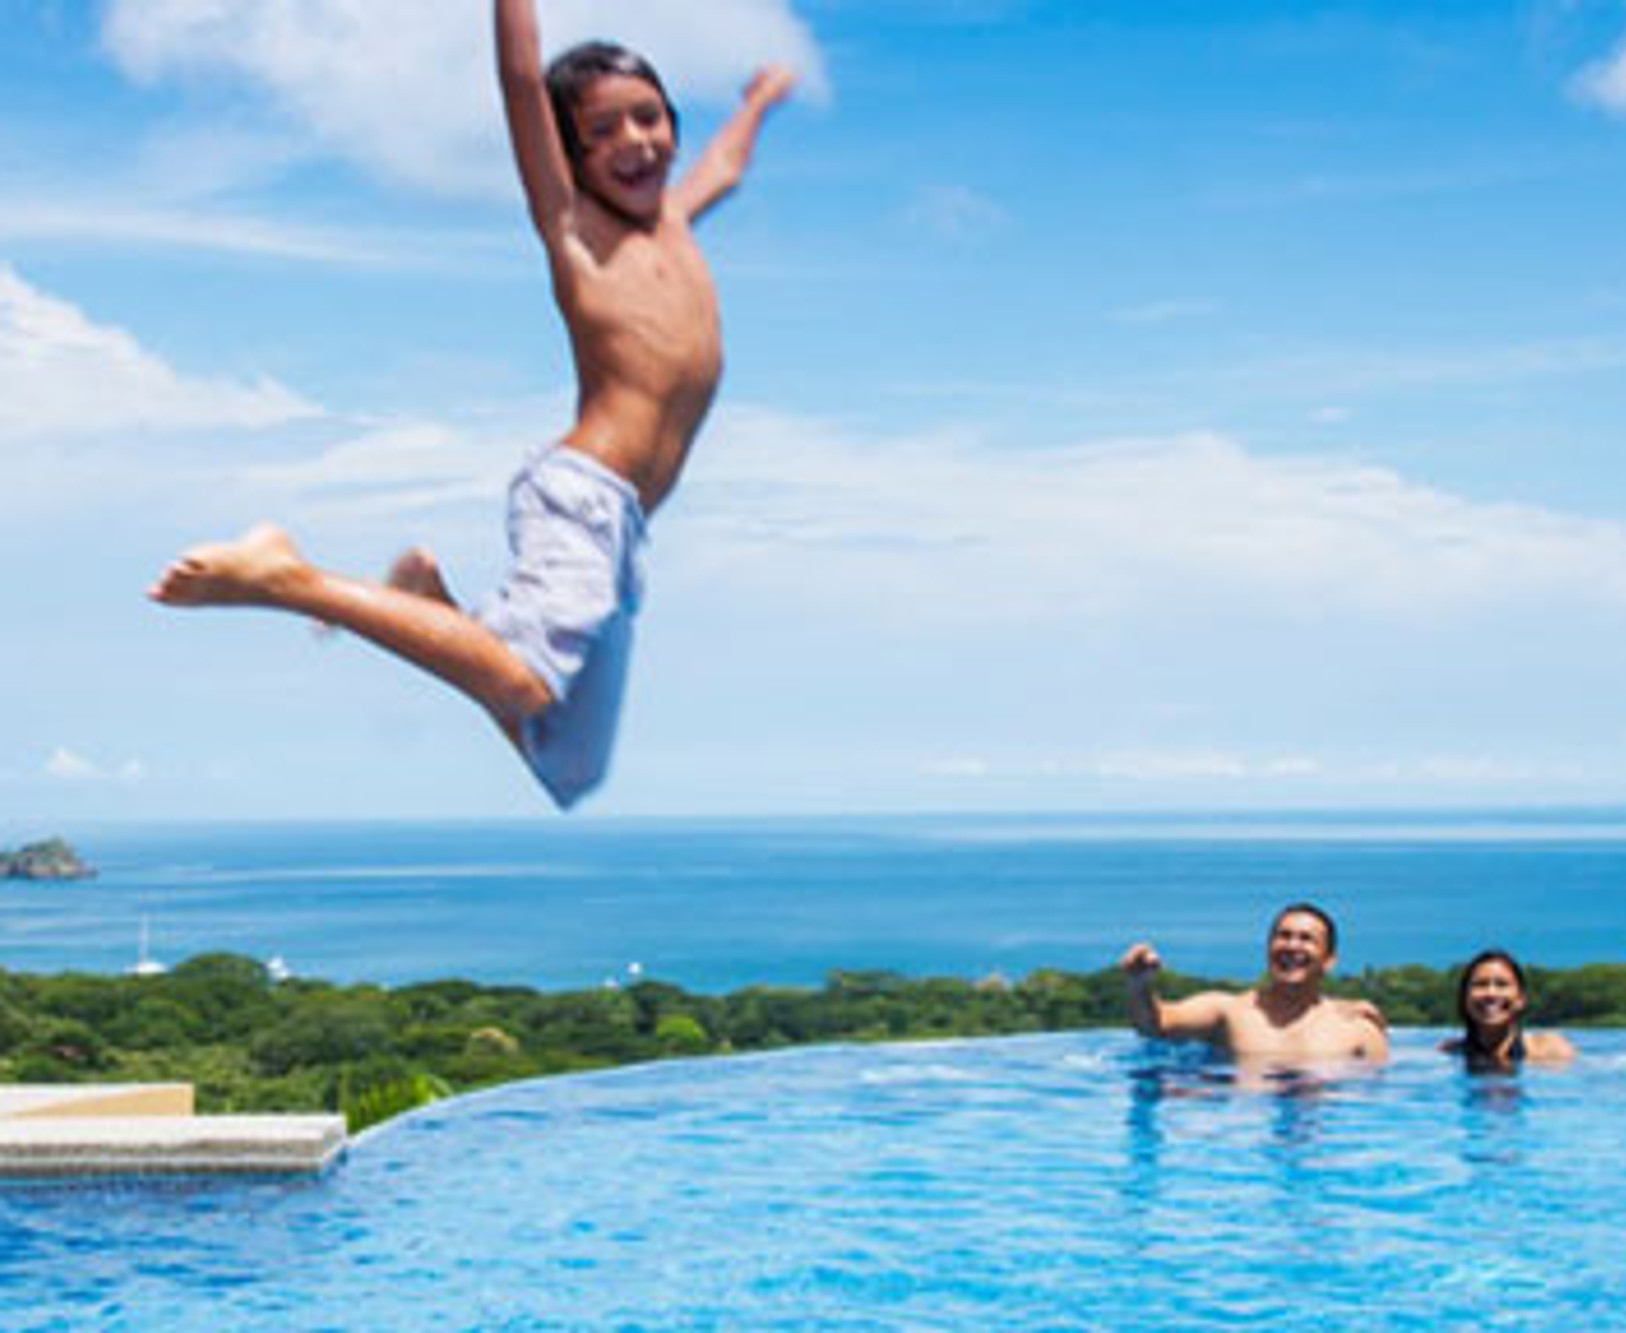 About Pool Service